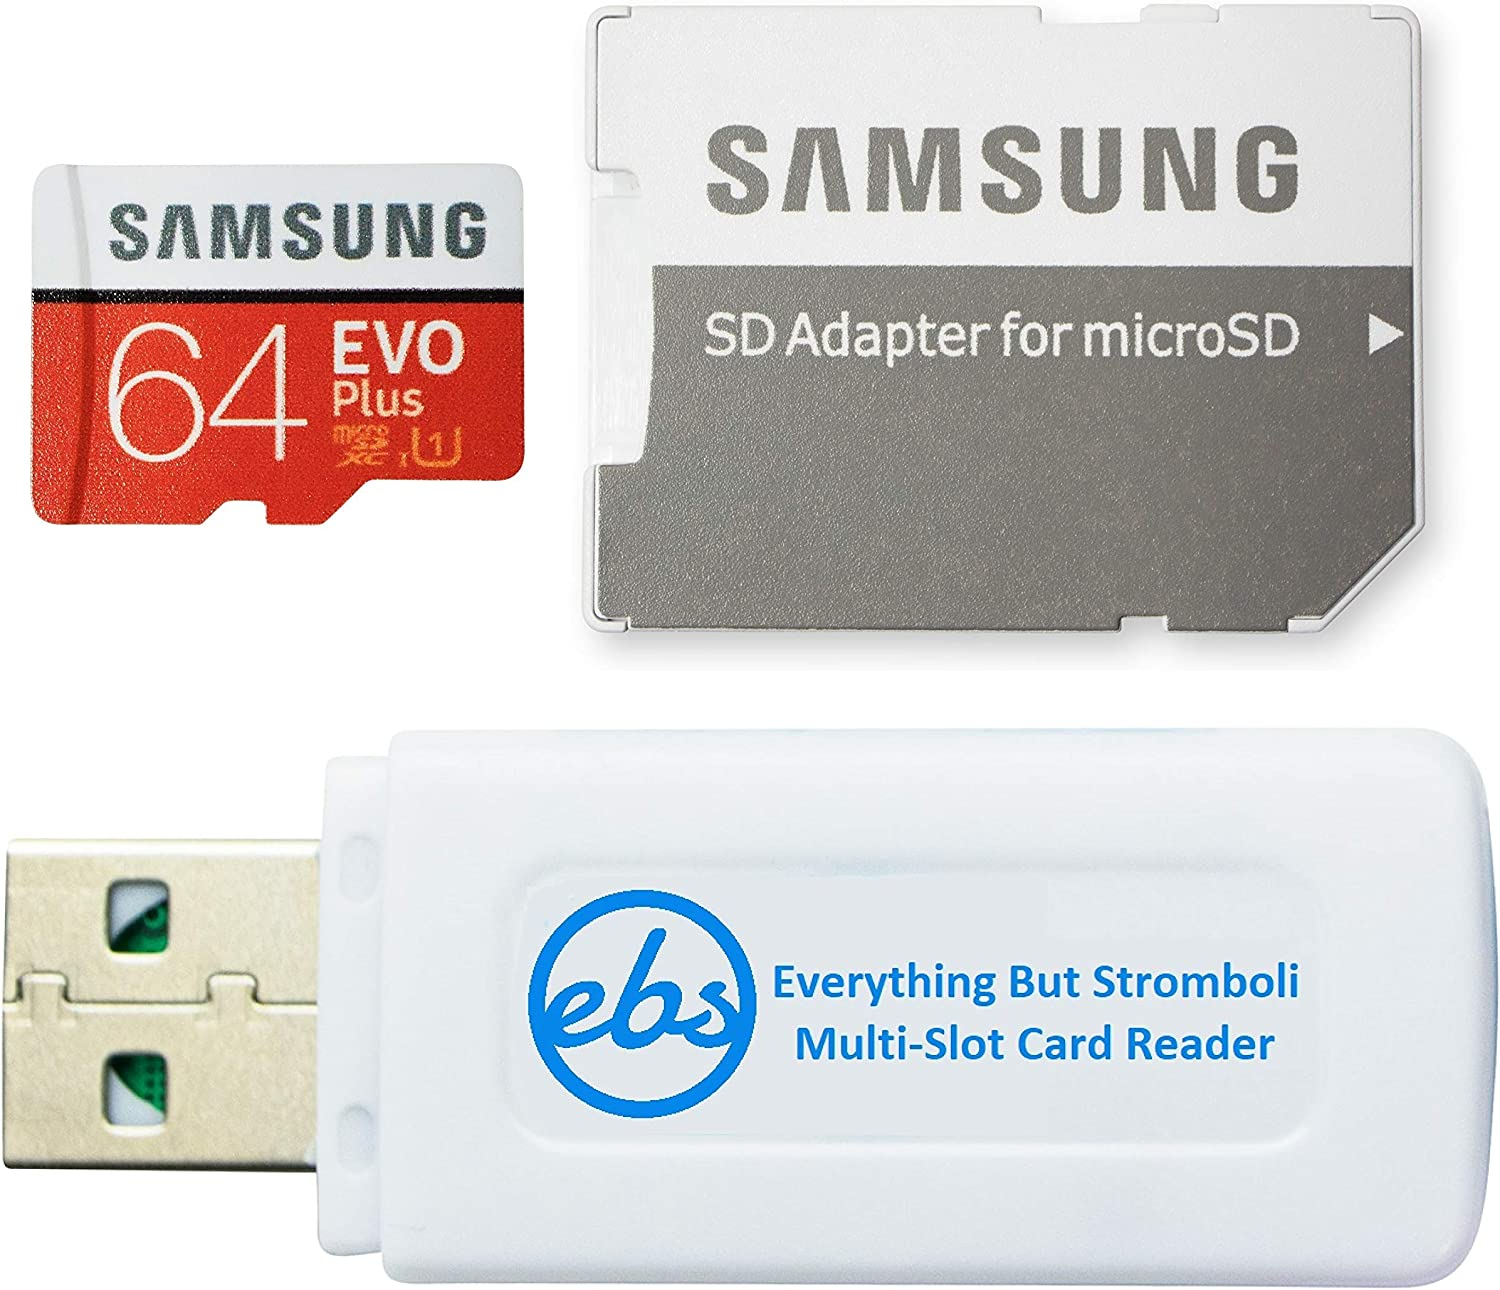 Samsung 64GB Micro SDXC EVO+ Plus Memory Card for Samsung Phone Works with Galaxy S20, S20+, S20 Ultra 5G, S10 Lite Phone (MB-MC64HA) Bundle with (1) Everything But Stromboli MicroSD Card Reader